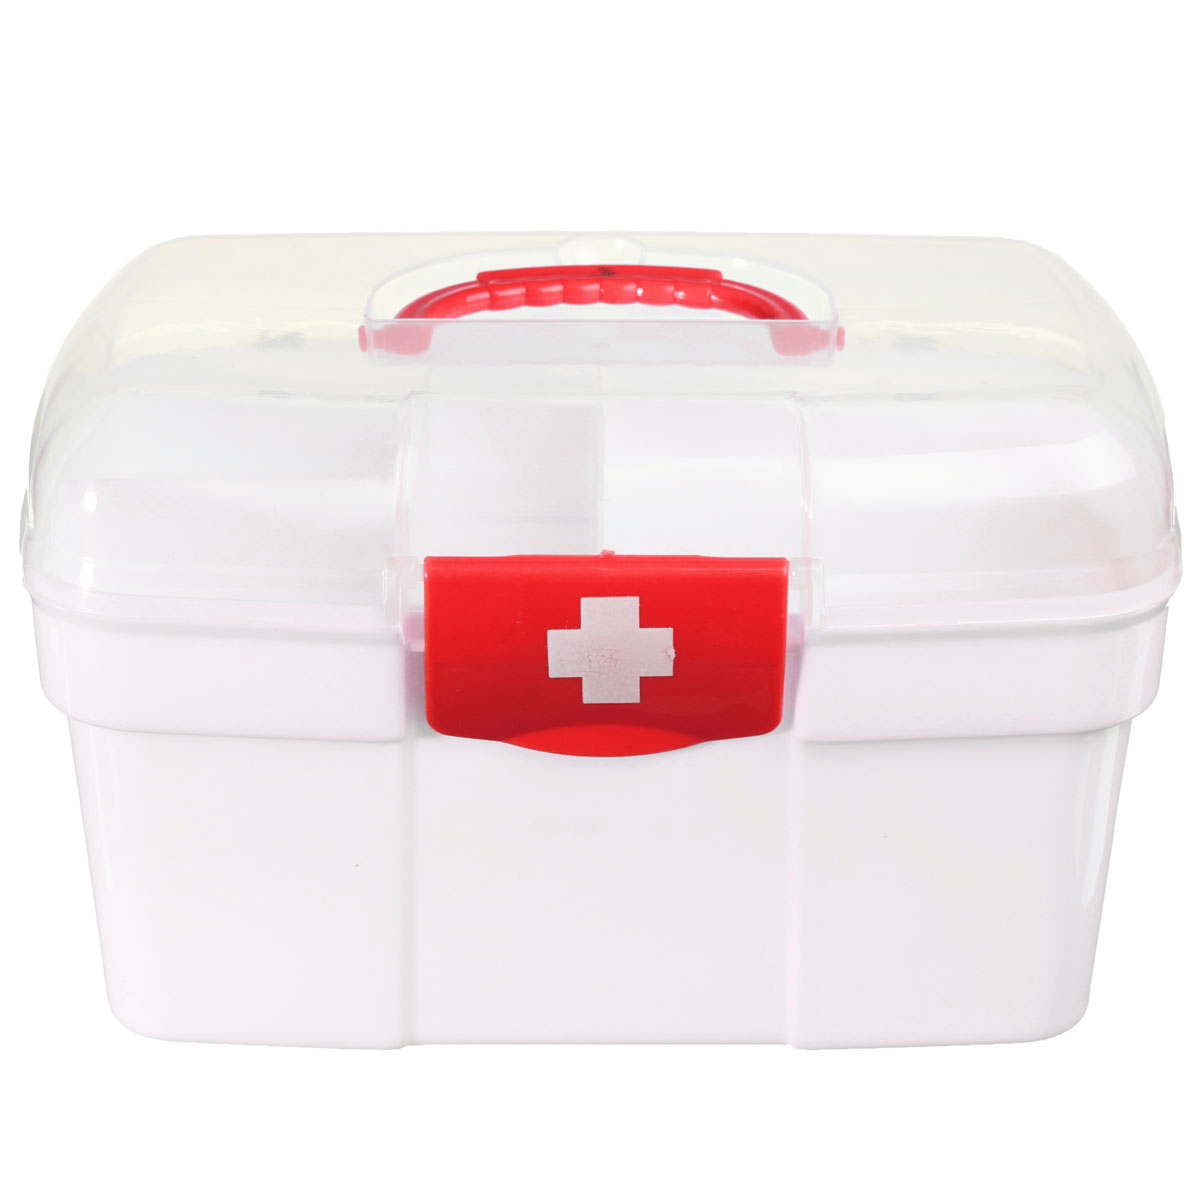 NEW Plastic 2 Layers Home Medicine Chest First Aid Kit Holder Storage Box Emergency Kits Security Safety new gbj free shipping home aluminum medical cabinet multi layer medical treatment first aid kit medicine storage portable